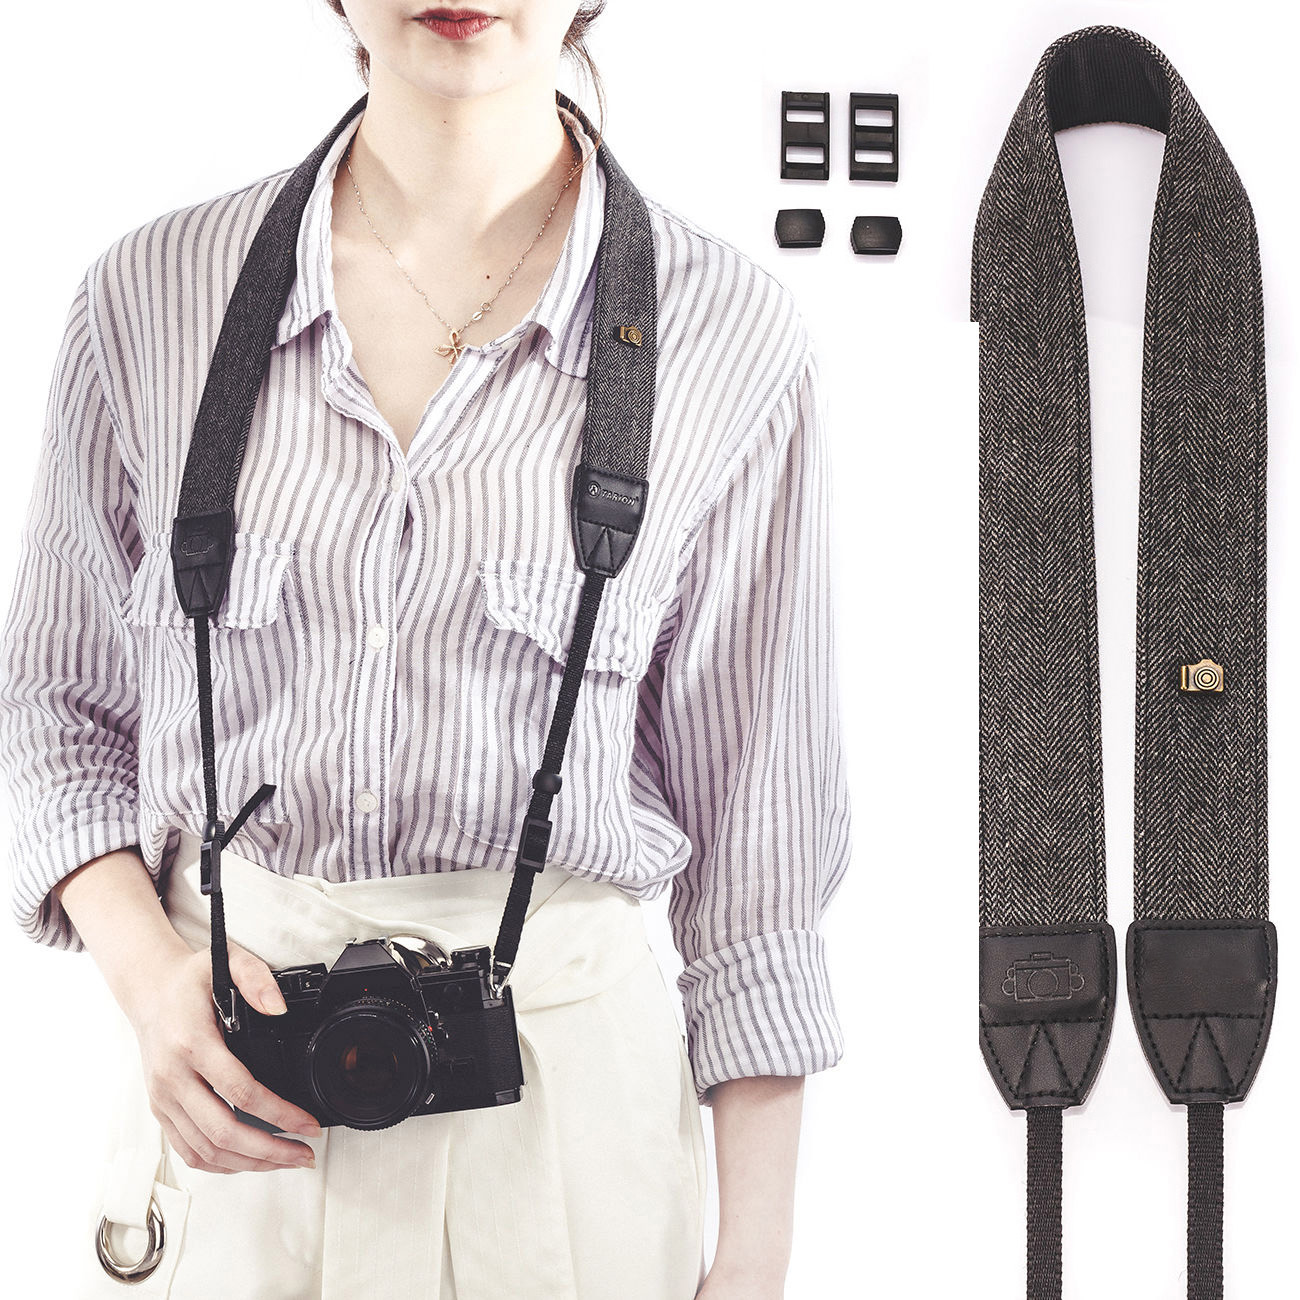 Universal Camera Shoulder Neck Belt Strap For SLR DSLR Digital For Sony Nikon Canon Olympus Camera Lens Strap  Canon 5d